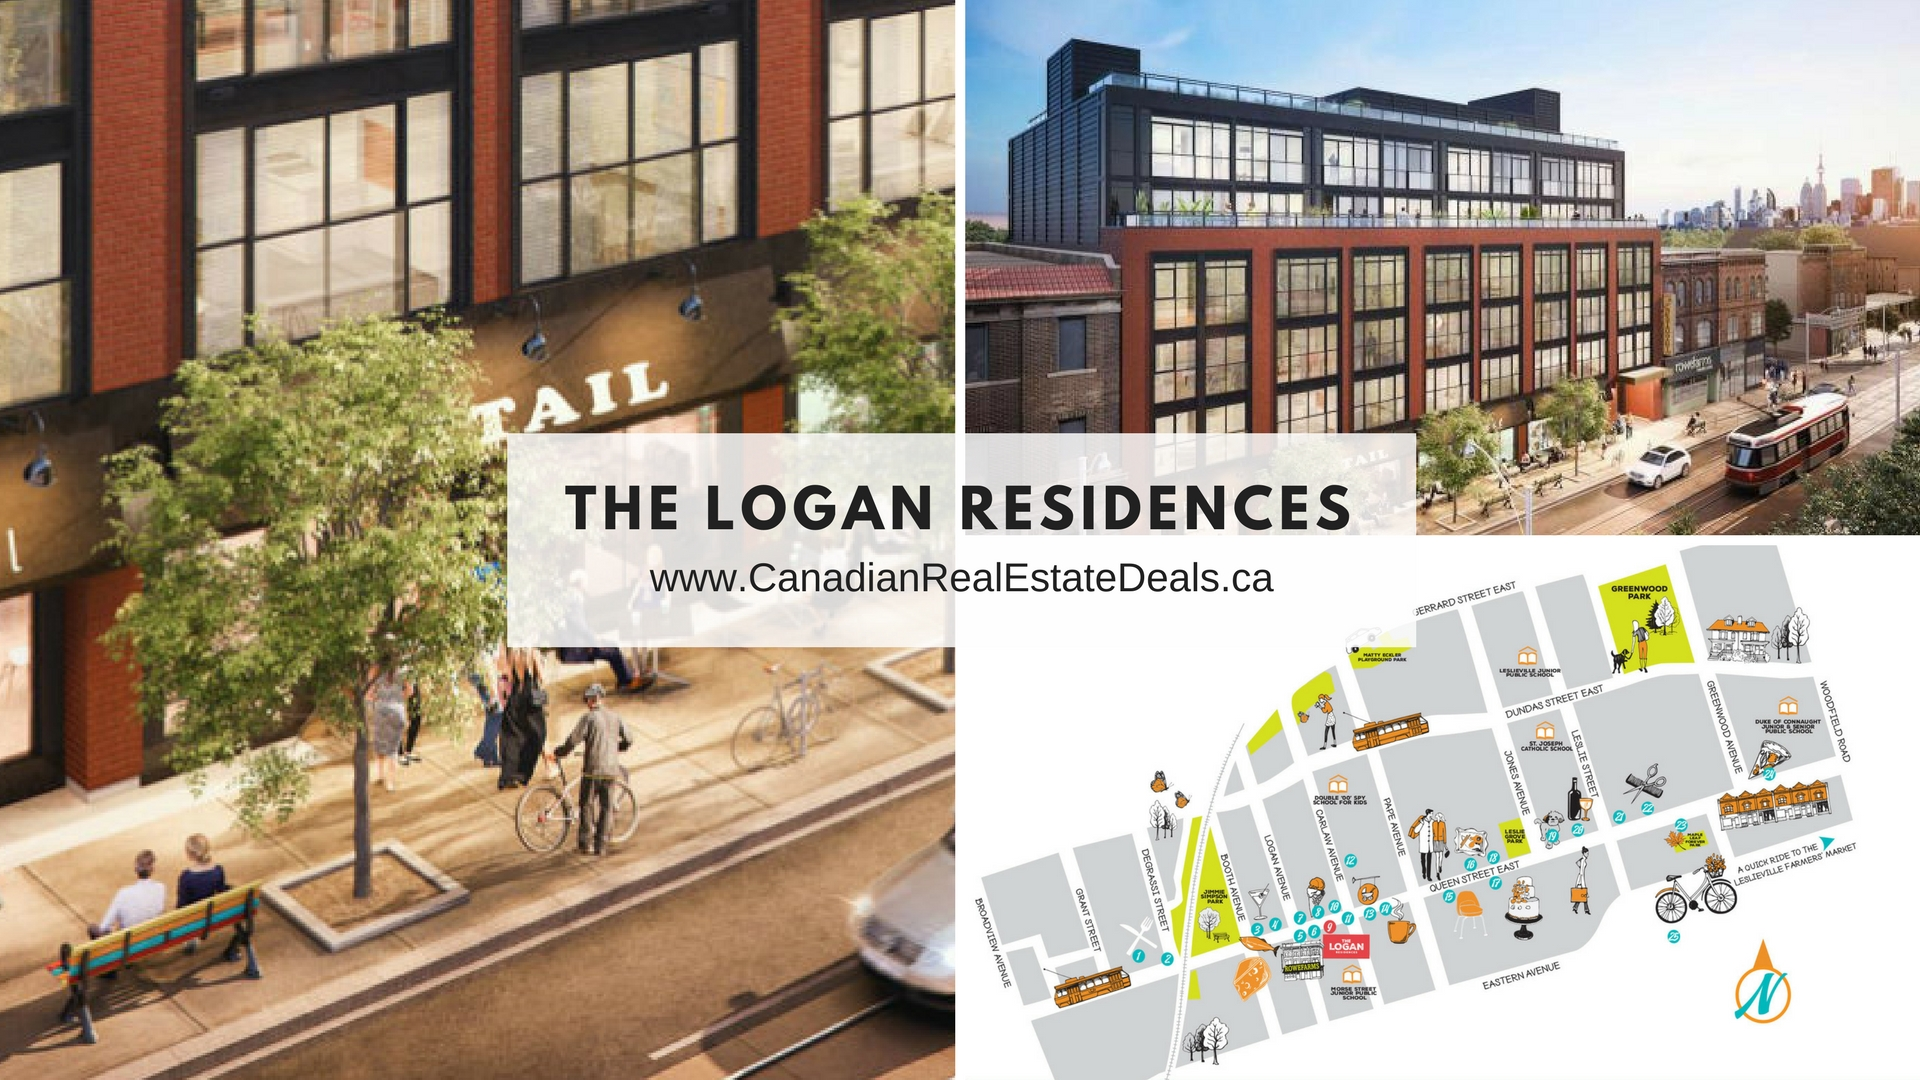 Toronto new condos - logan residences